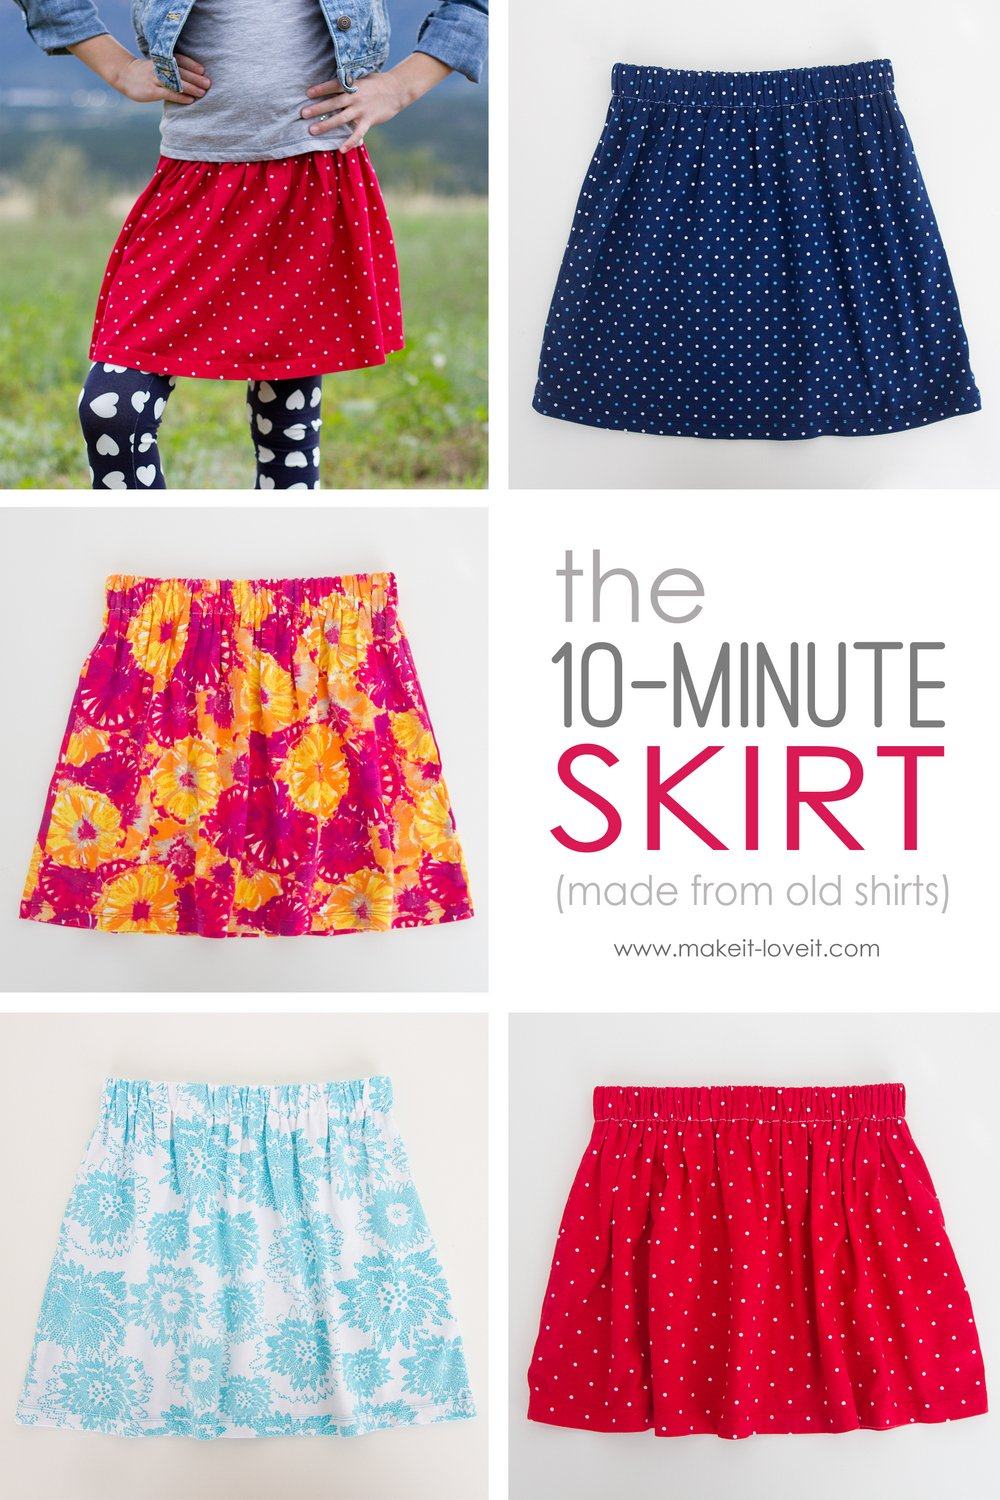 344ef2dbf9 The 10-Minute Skirt (re-purposing old shirts into skirts) – Make It ...